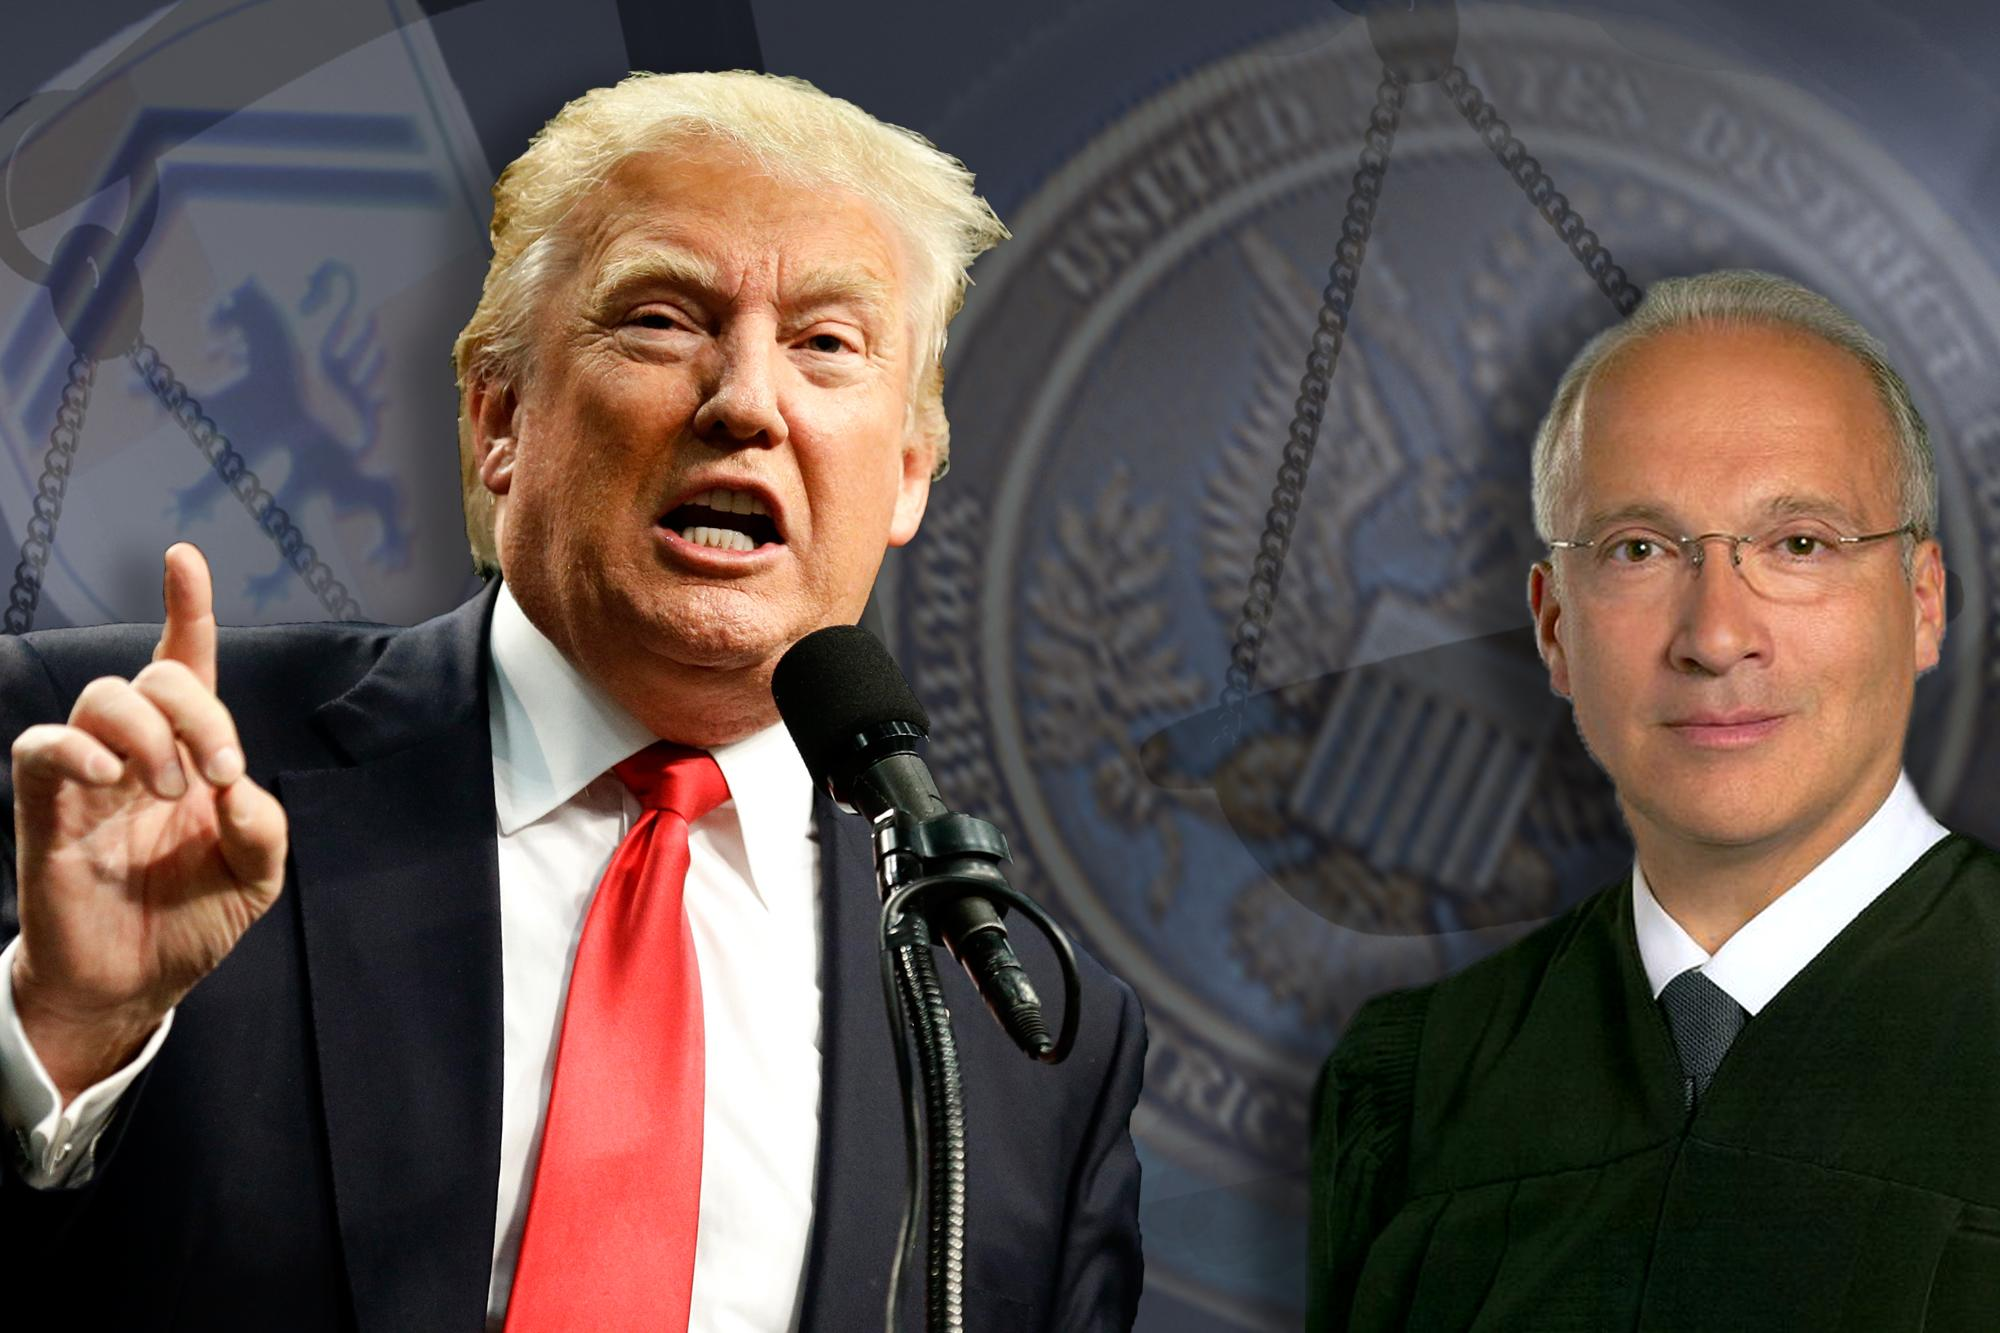 Donald Trump and Judge Gonzalo Curiel (Photo illustration: Yahoo News, photos: AP, Thos. Robinson/Getty Images, U.S. District Court for the Southern District of California via Wikipedia, San Diego Superior Court via San Diego Union Tribune)